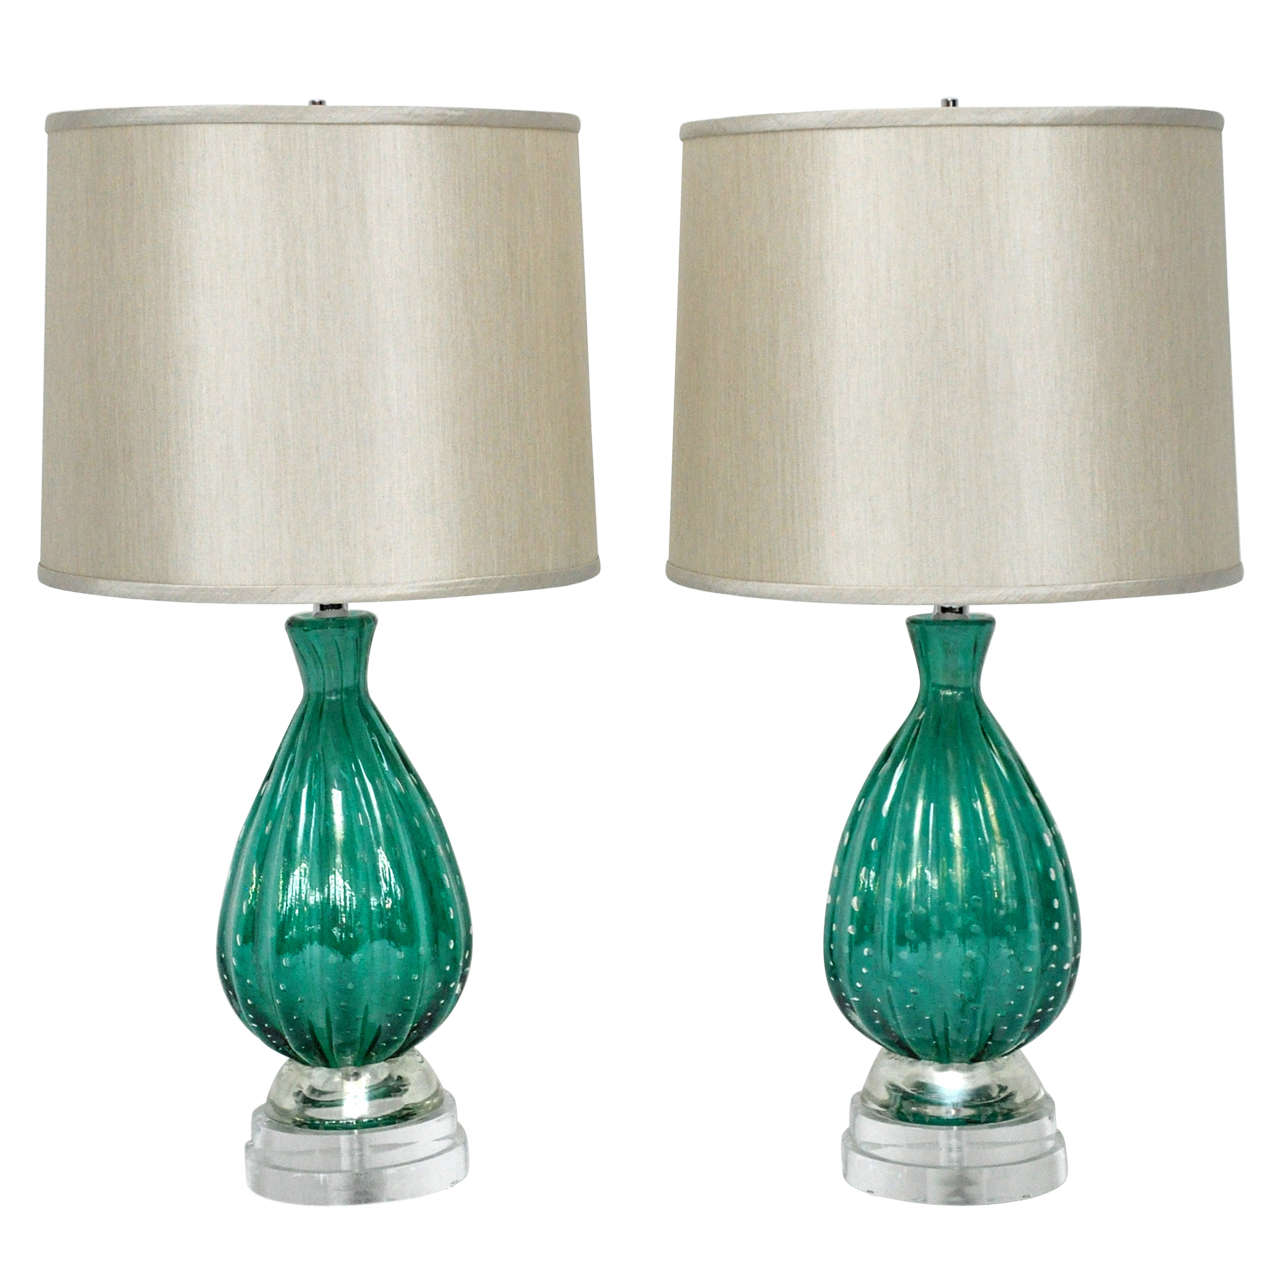 turquoise murano glass lamps by barovier at 1stdibs. Black Bedroom Furniture Sets. Home Design Ideas